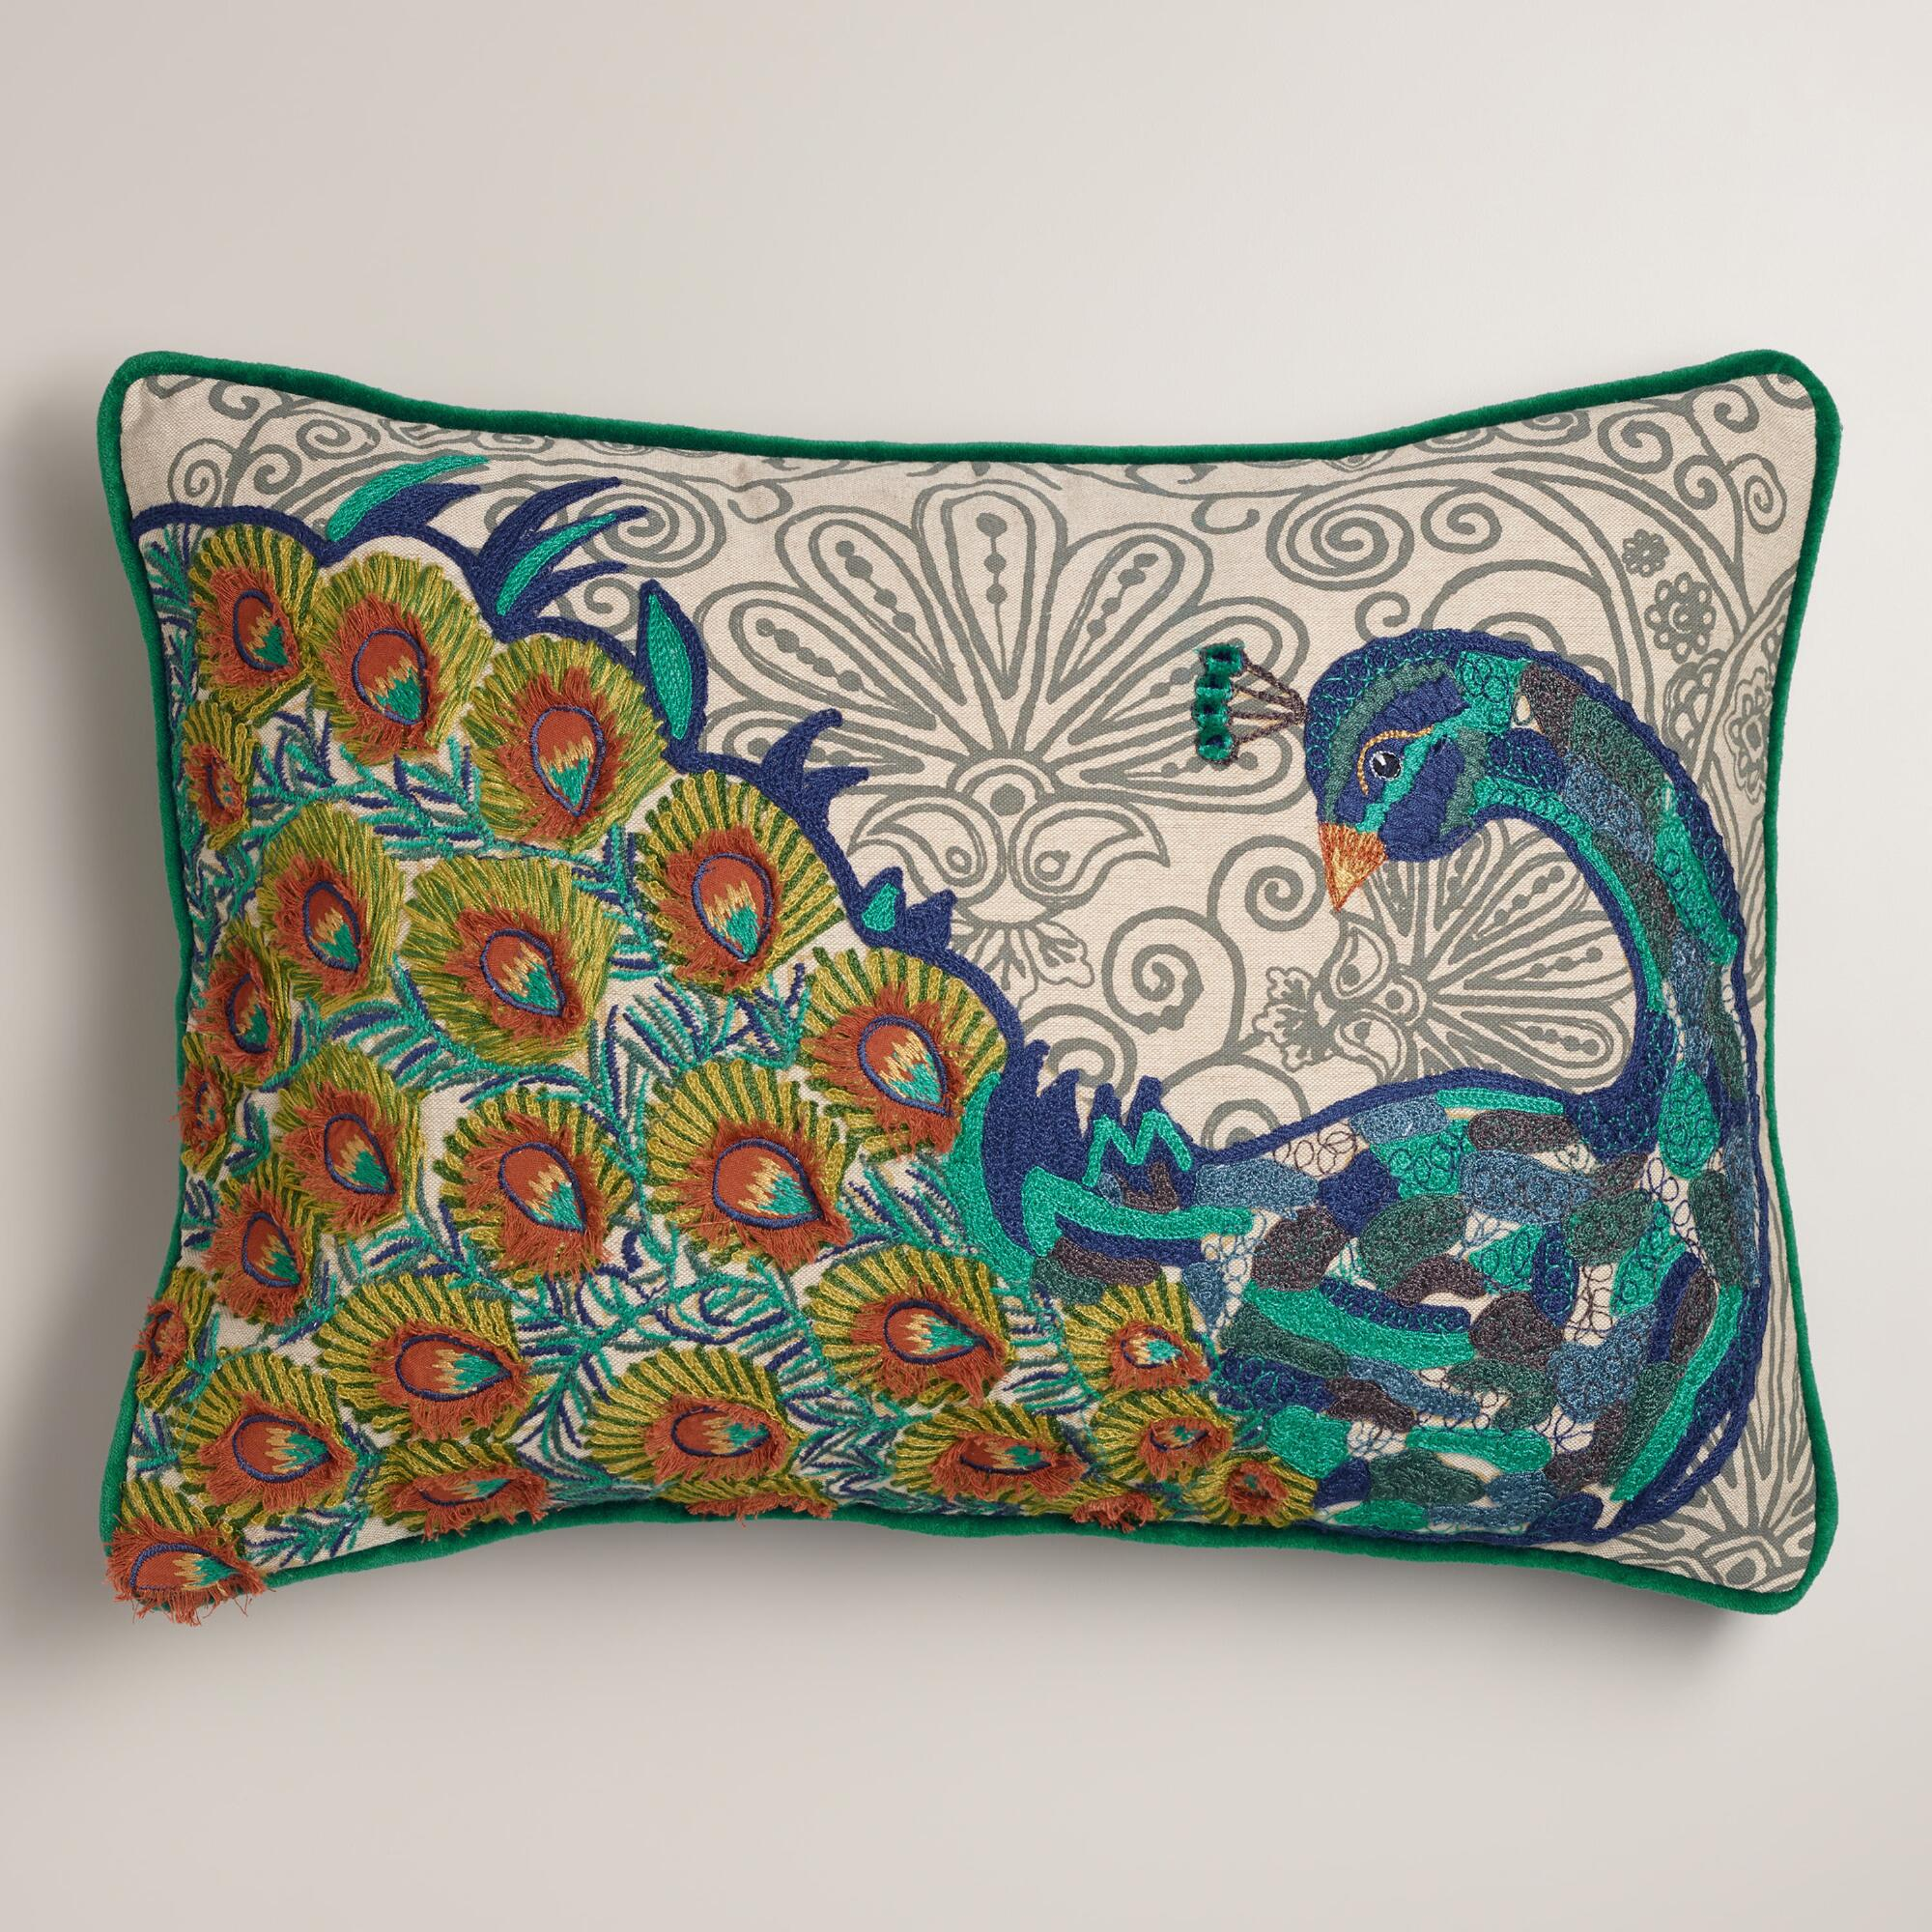 Throw Pillow Peacock : Peacock Blue Chambray Lumbar Pillow World Market